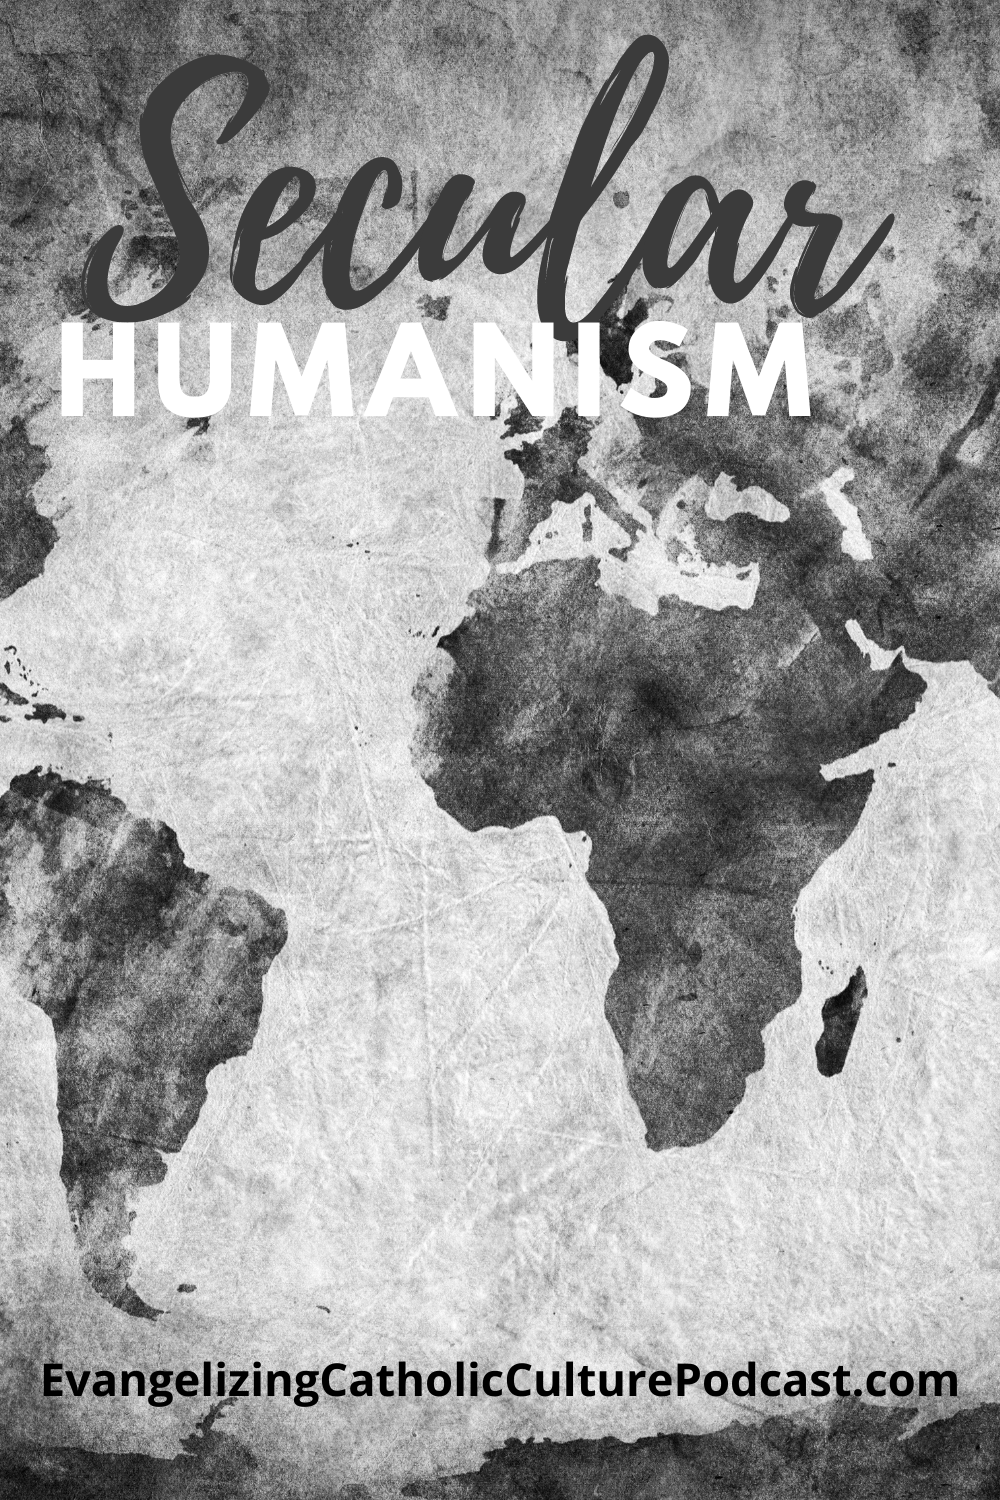 Secular Humanism | Secular Humanism introduces a spirit and way of life which engages in various aspects of unbelief in the supernatural. | #podcast #christianpodcast #secularhumanism #CatholicPodcast #Christianthemes #secular